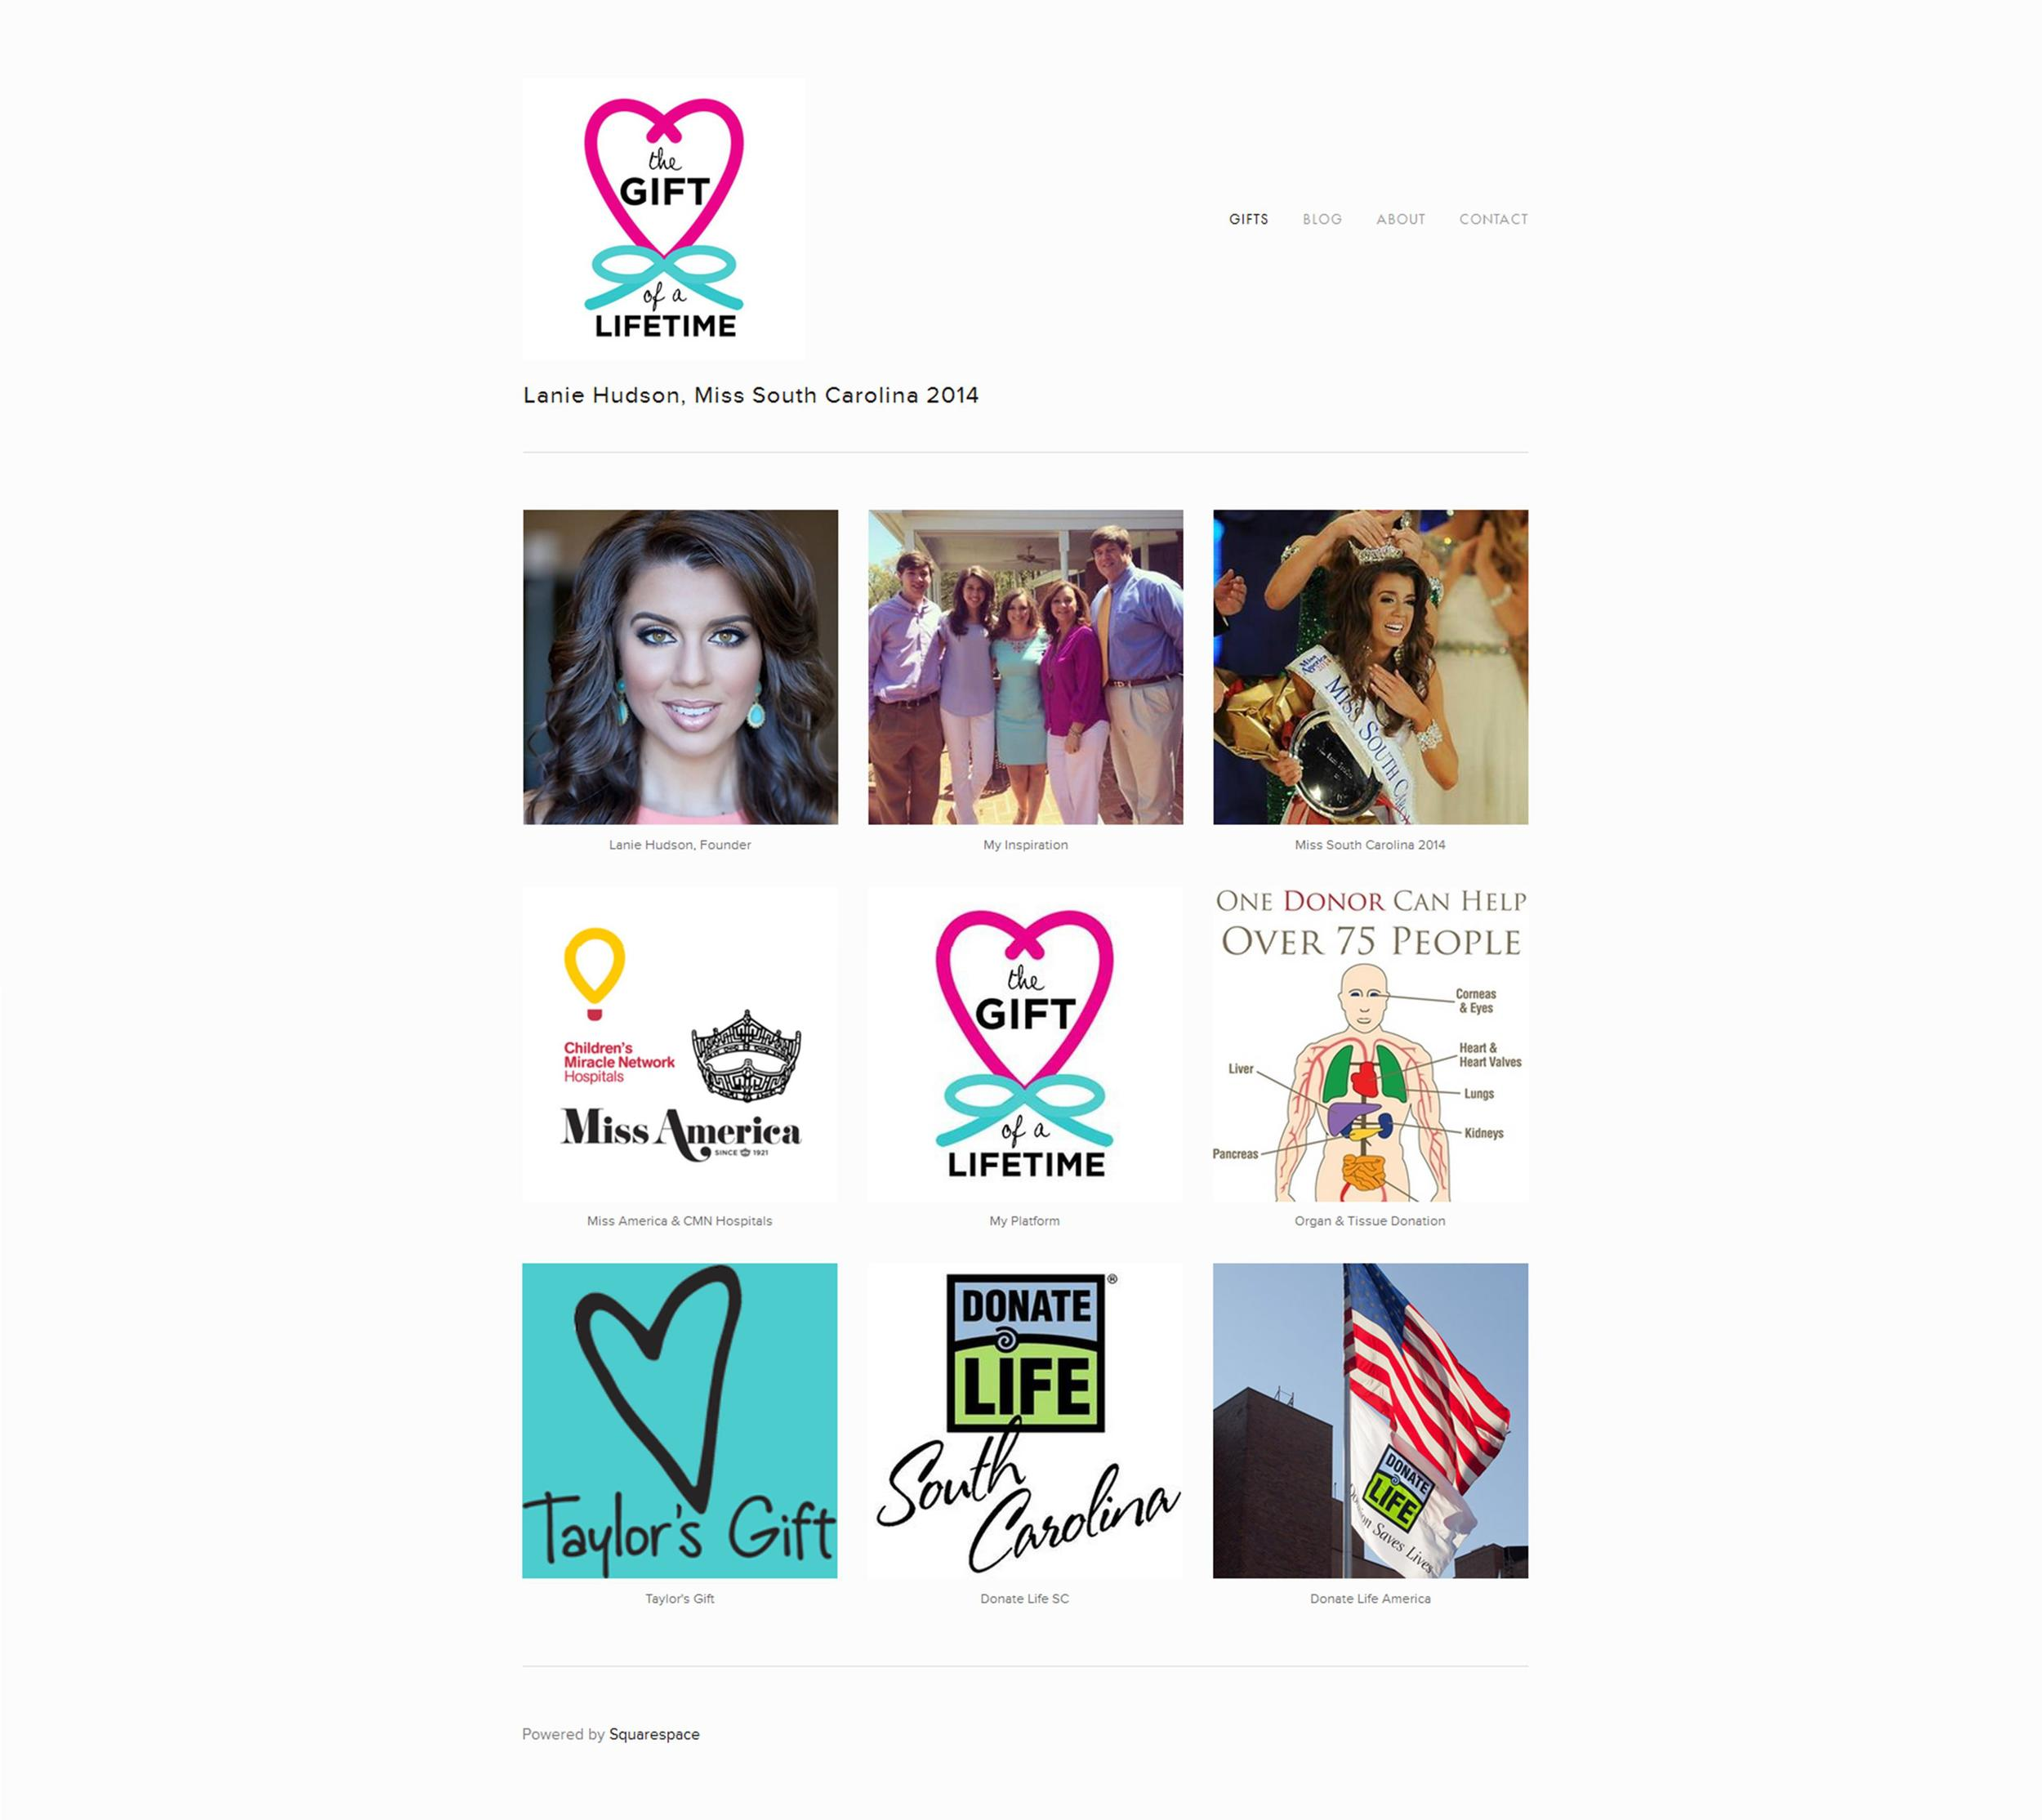 WEBSITE DESIGN / Lanie Hudson, Miss South Carolina 2014